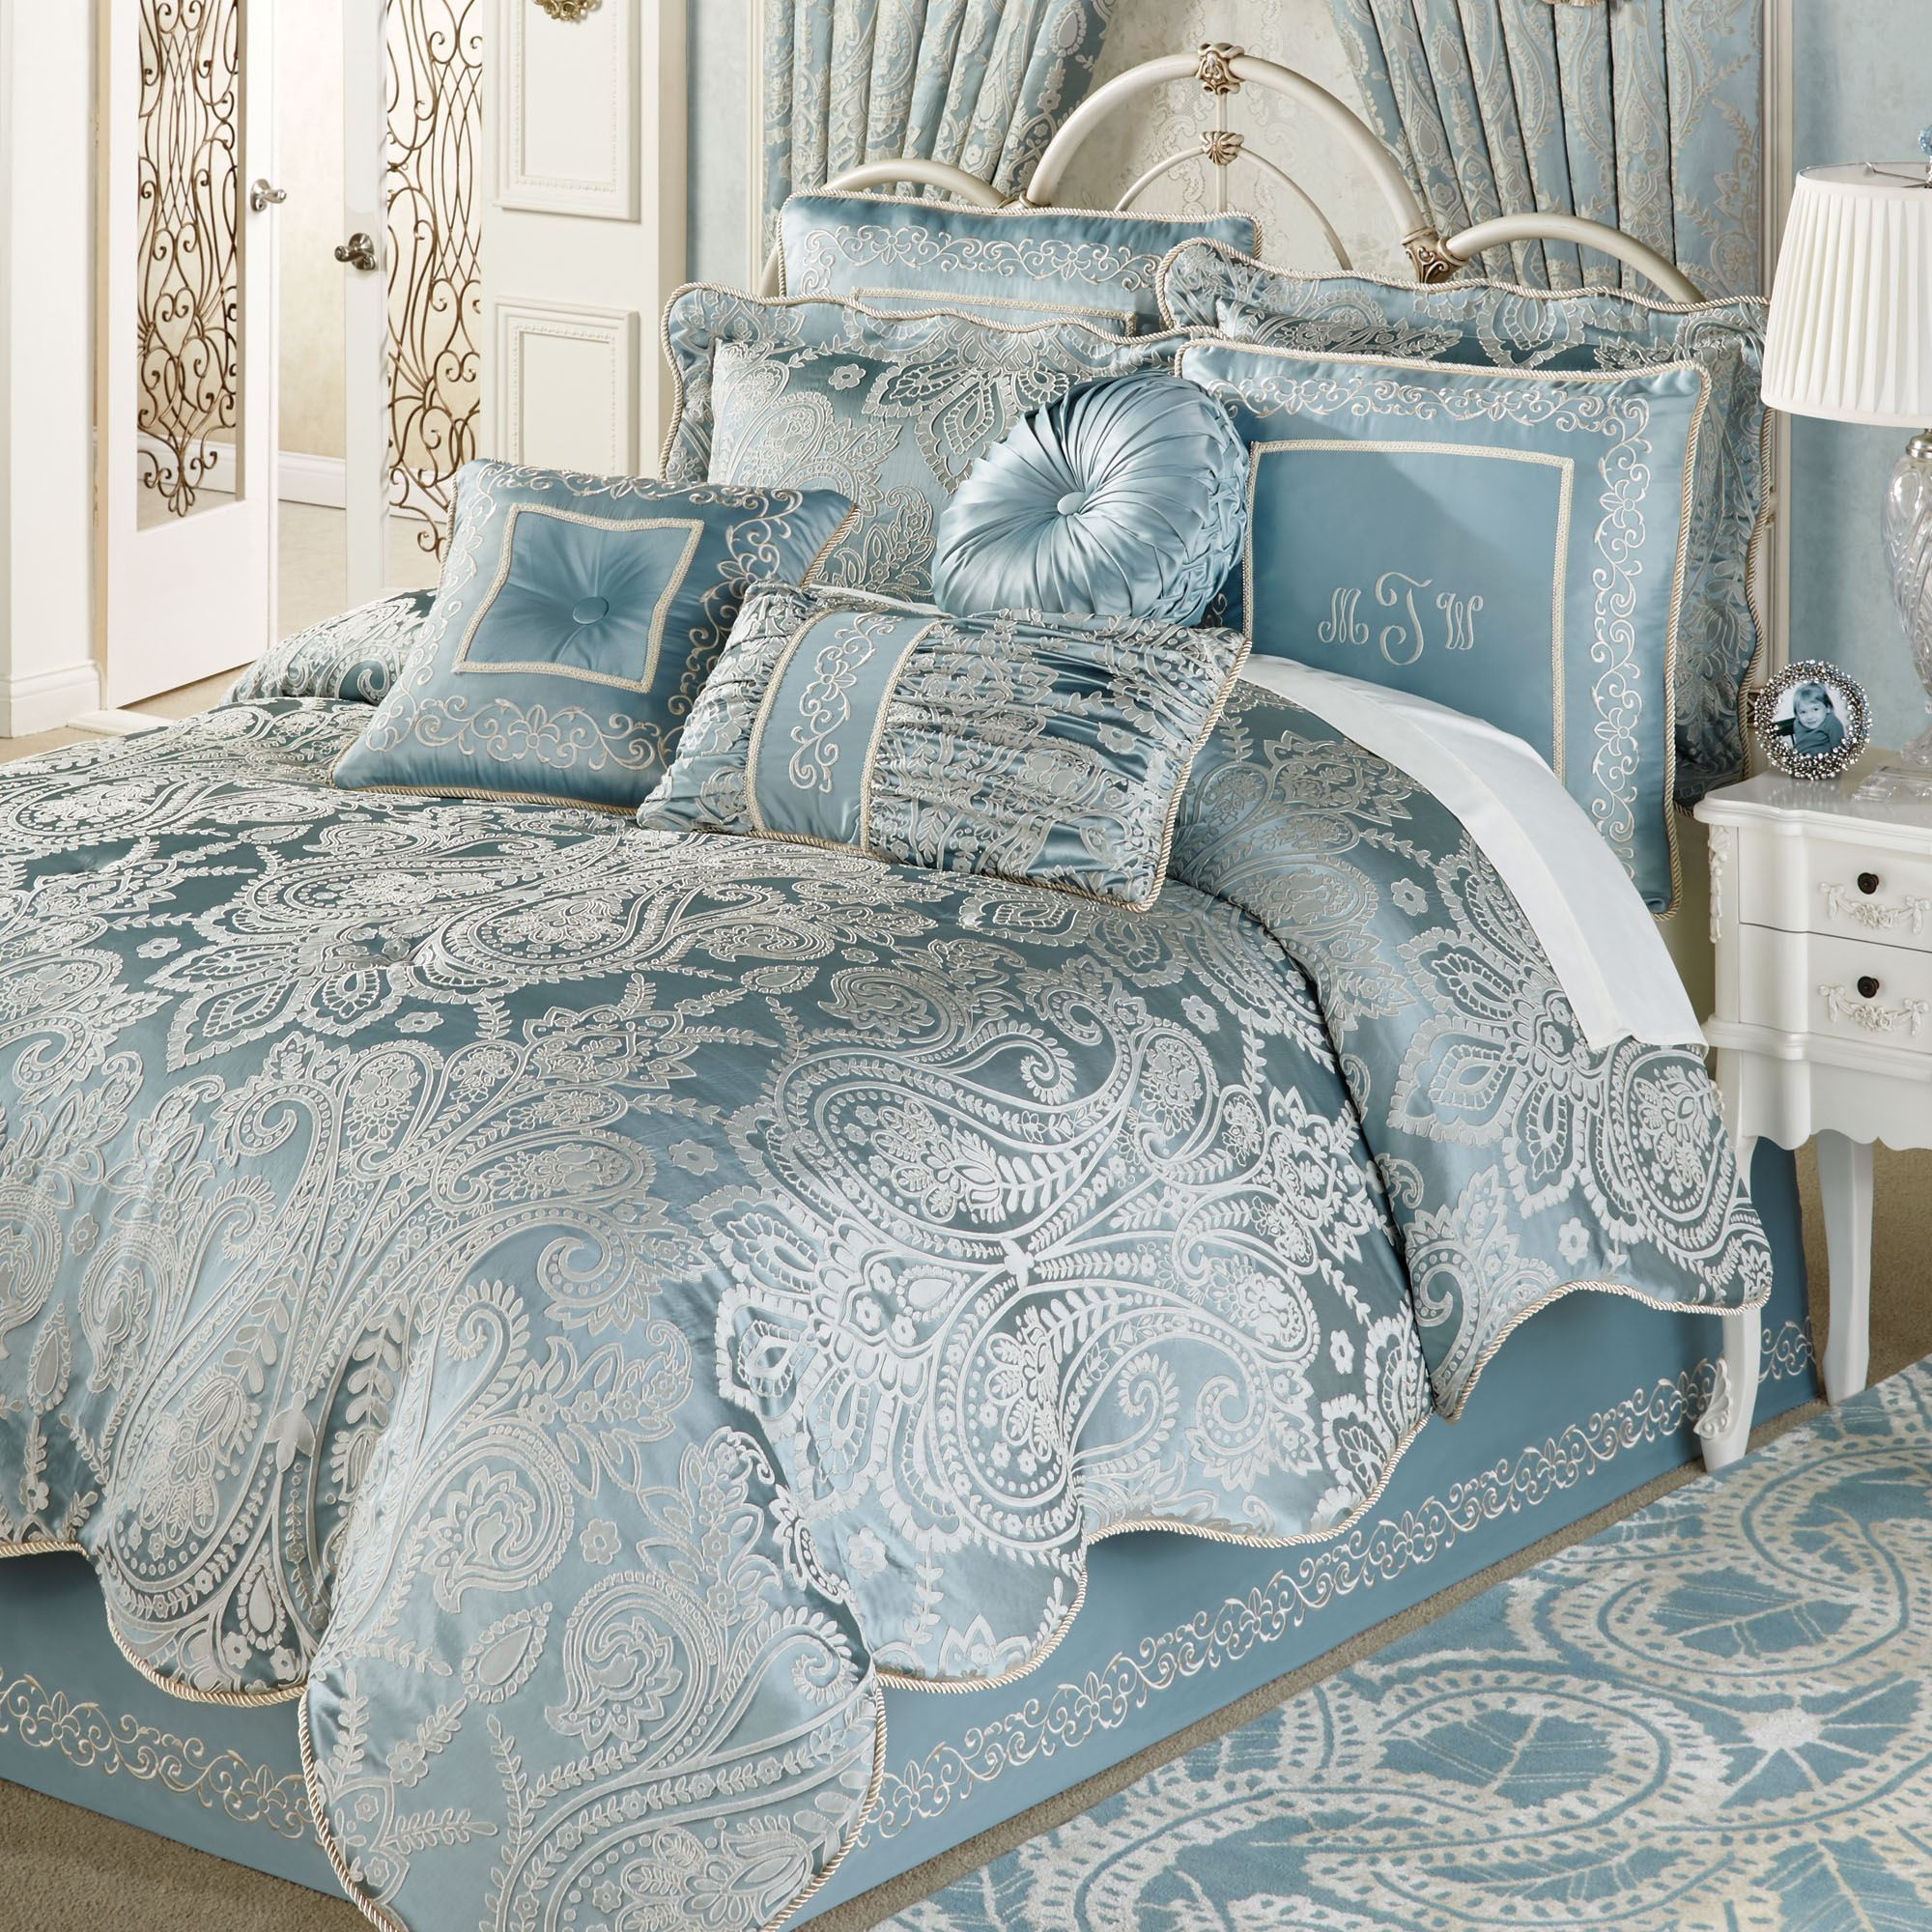 Exciting comforters sets for bedroom design with queen comforter sets